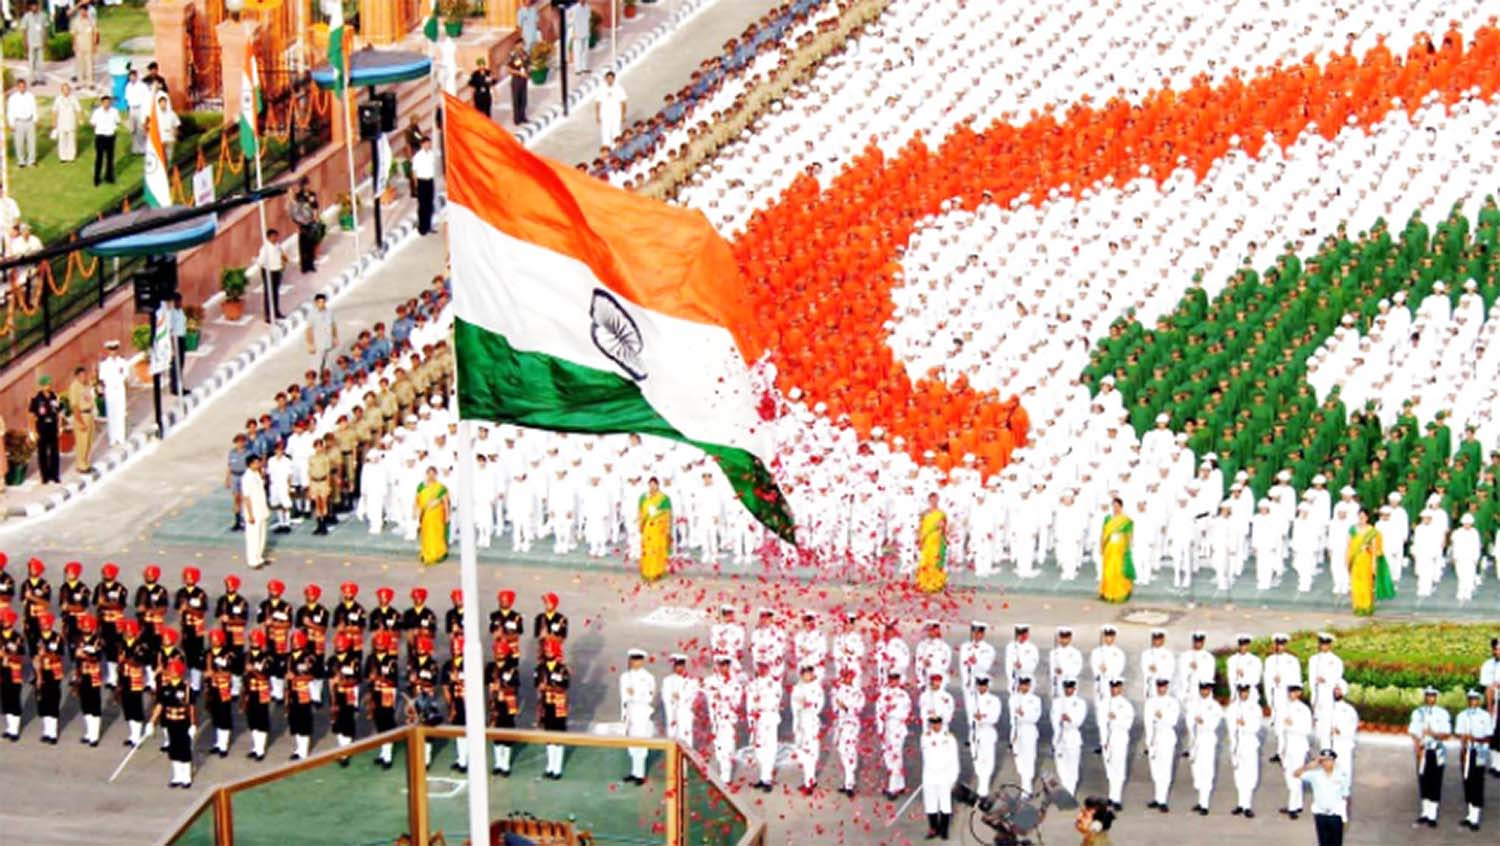 Celebration of republic day and flag hoisting